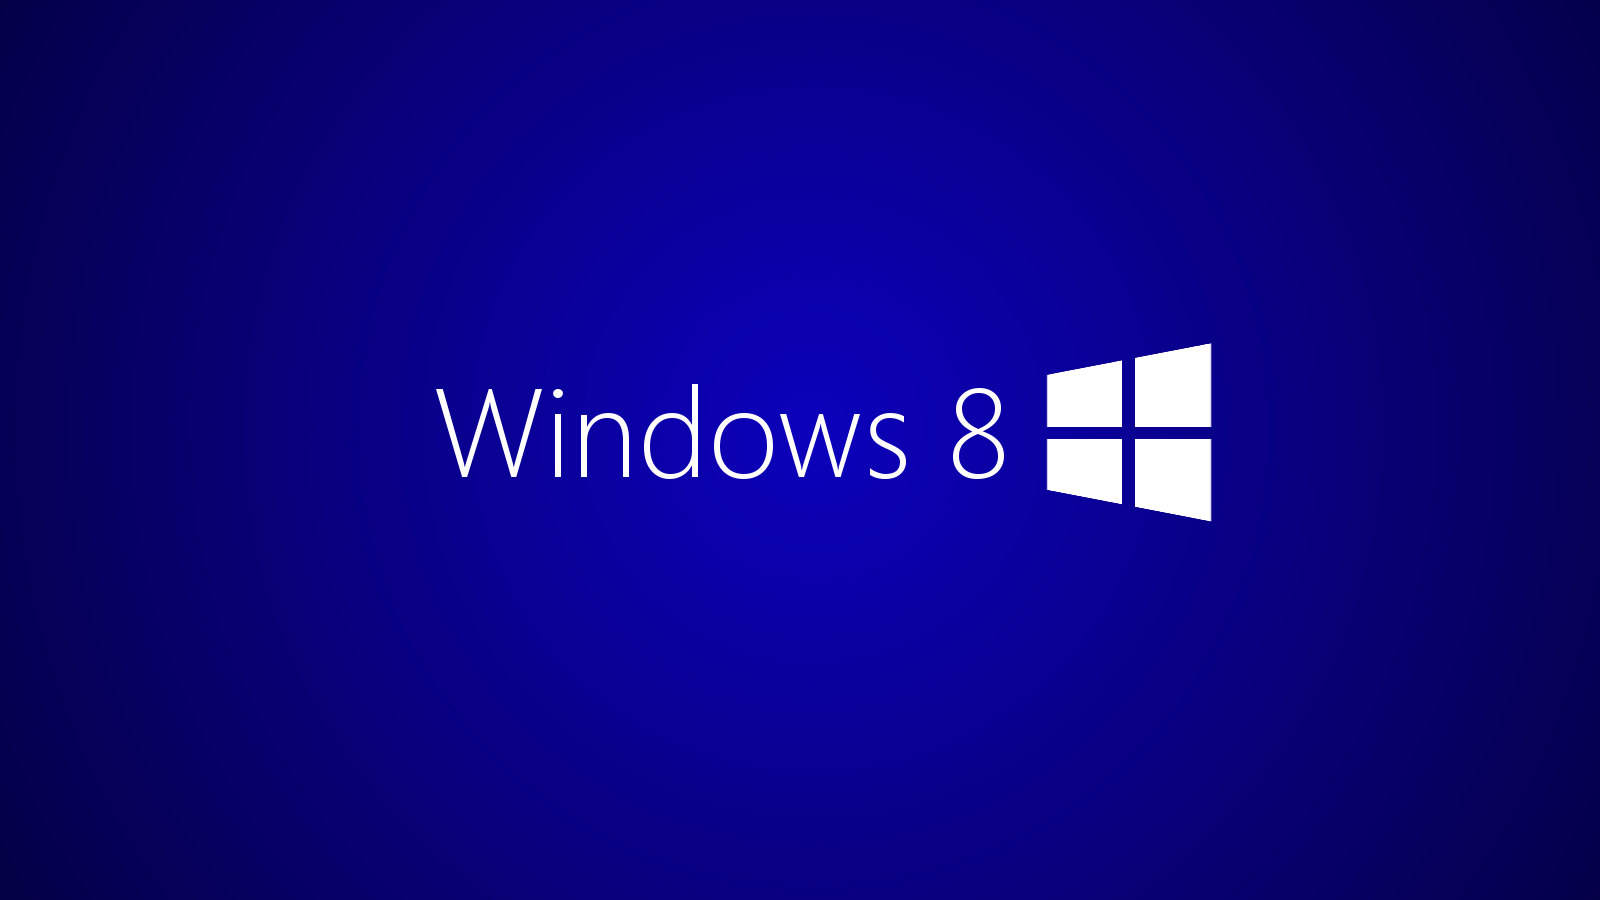 Windows 8 Official Wallpapers - Wallpaper Cave